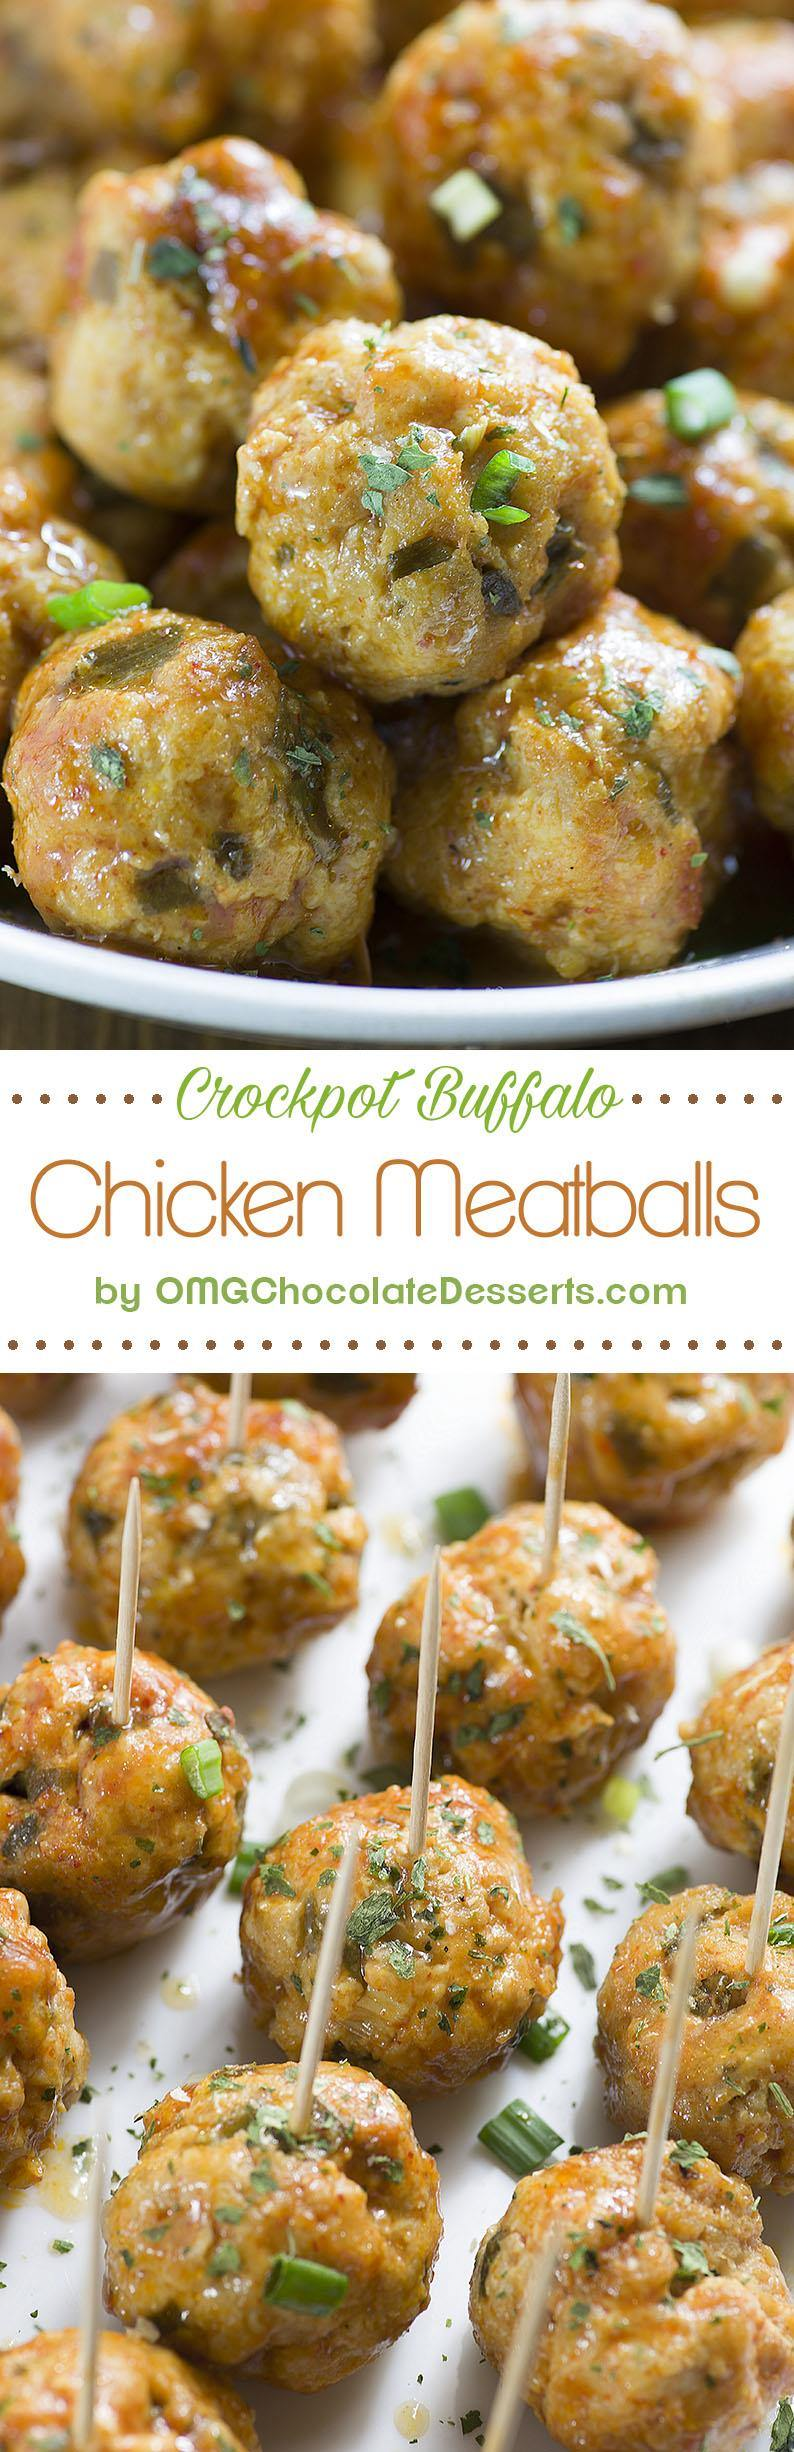 Buffalo Chicken Meatballs - fun and easy recipe for the perfect bite sized appetizer, or you can add some side dish and you'll have a healthy dinner for your family.